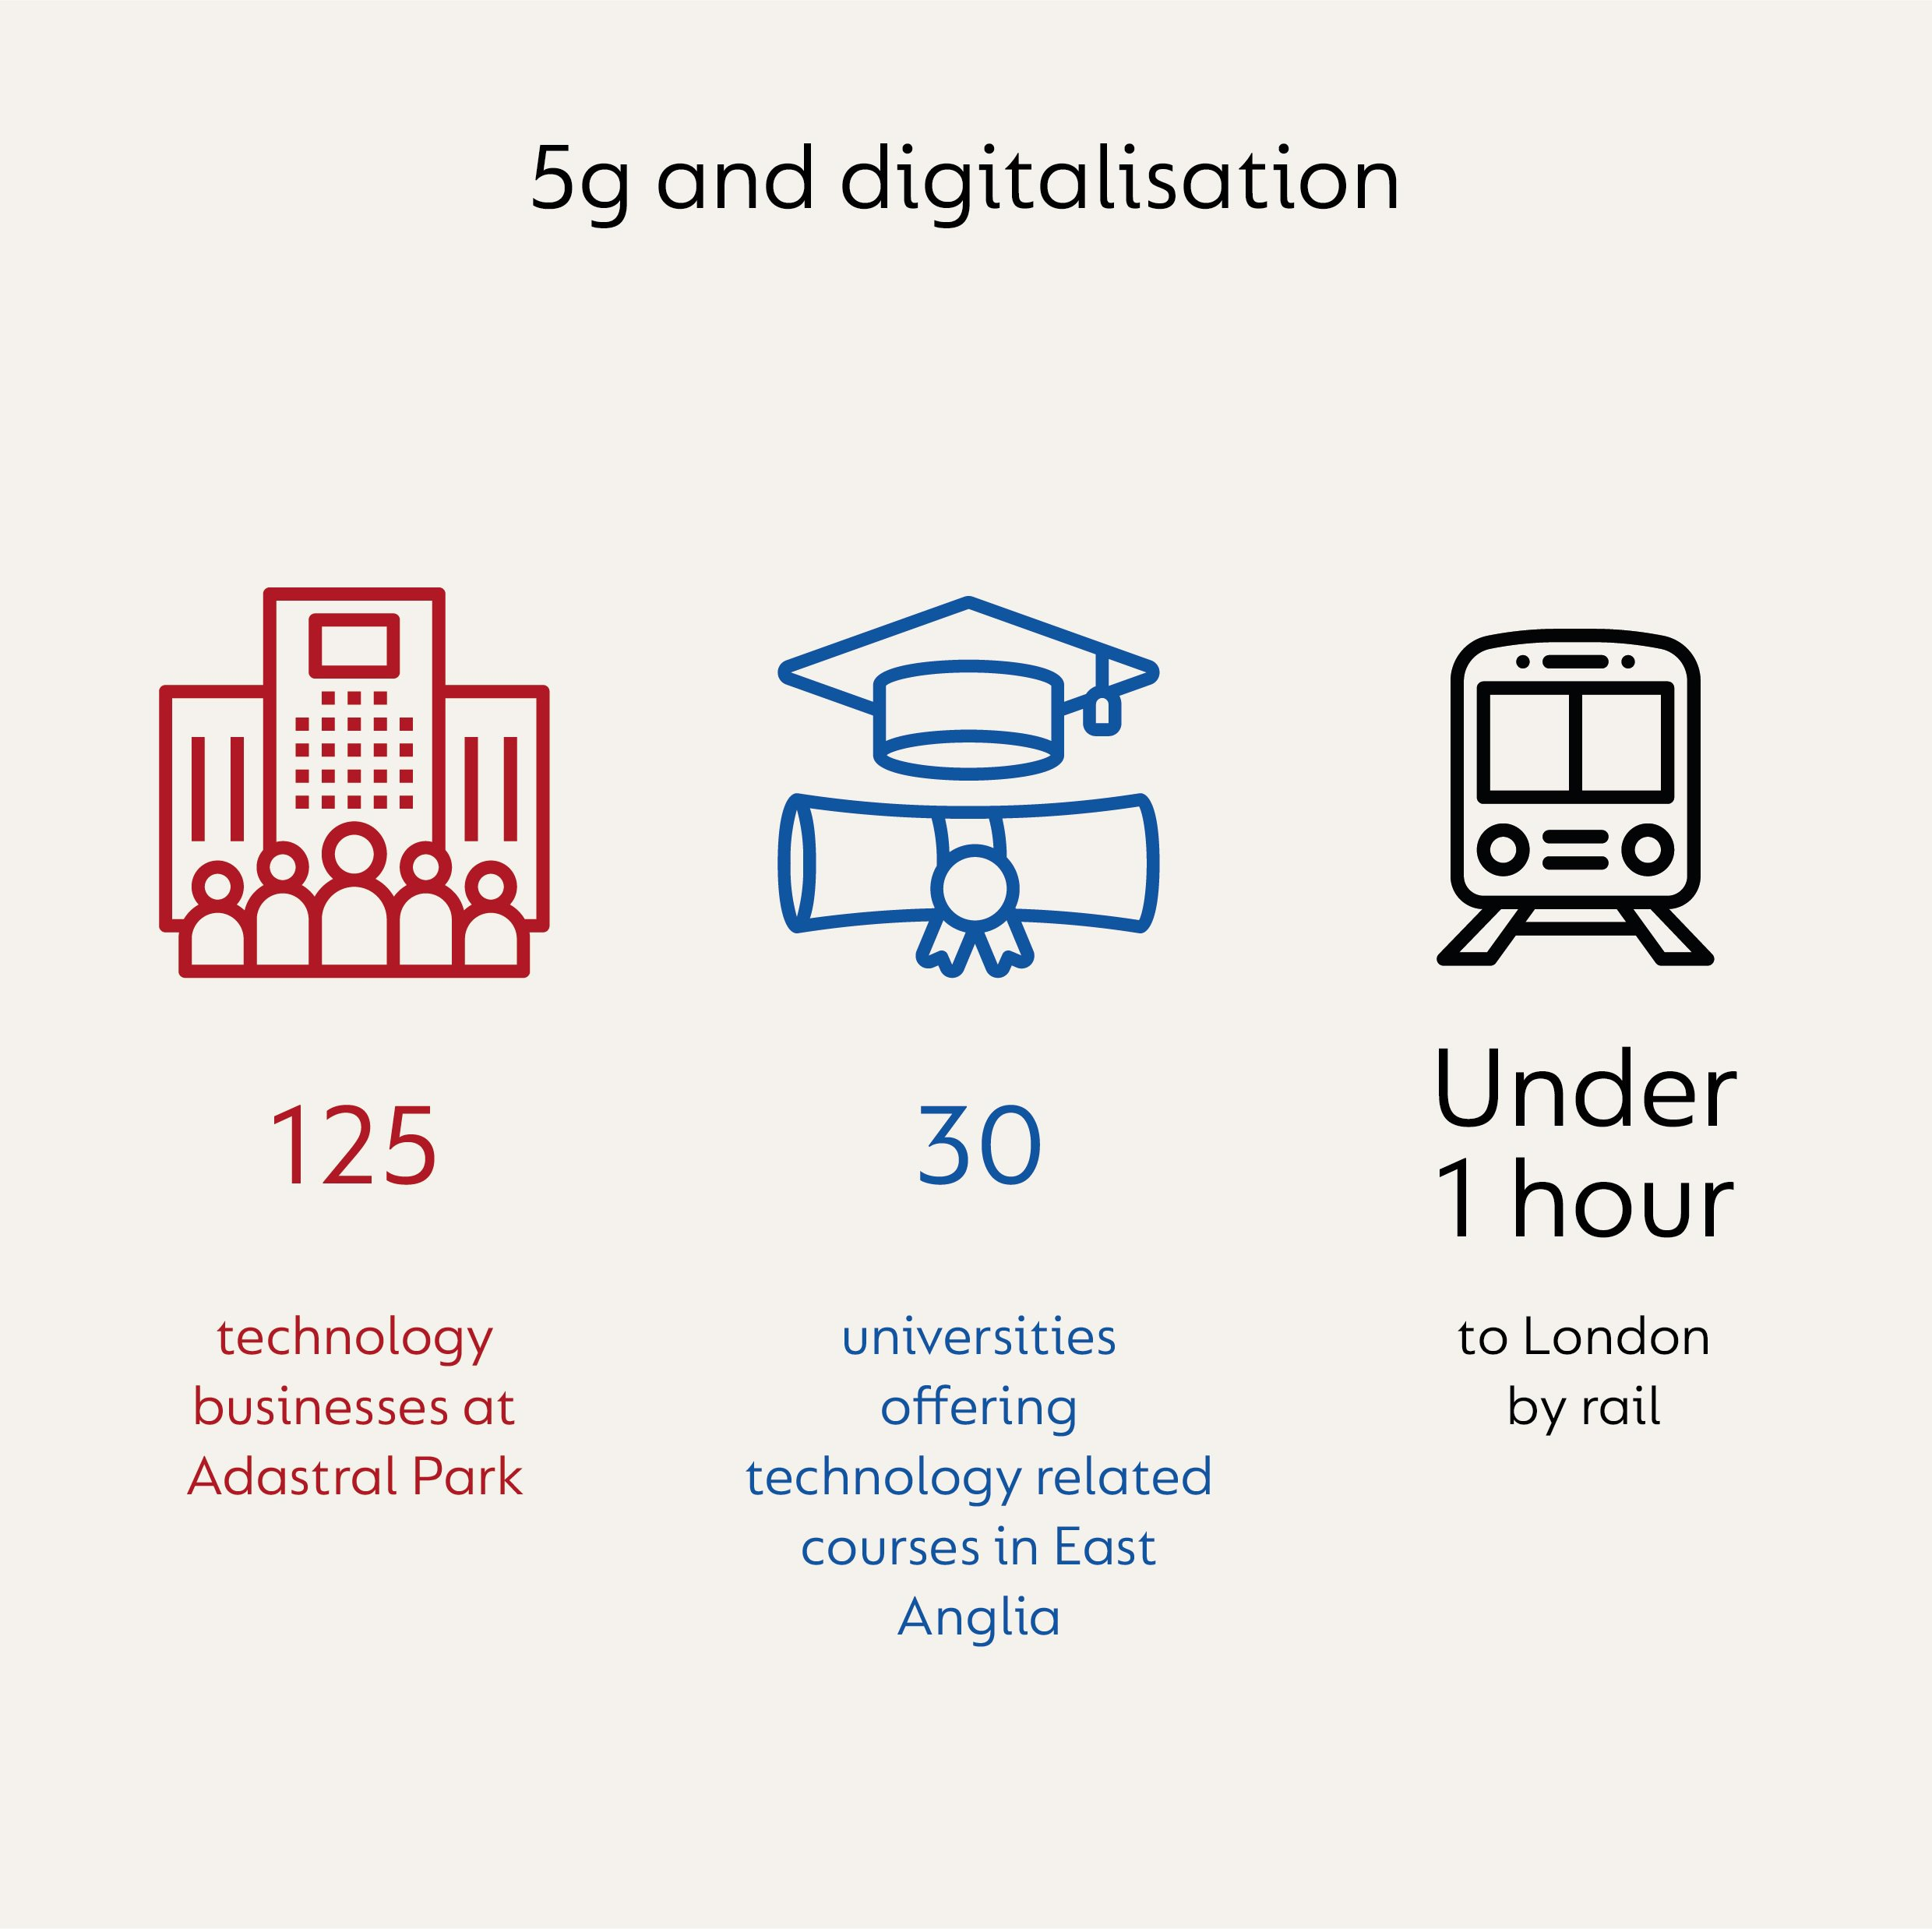 Infographic with the information that there are 125 technology businesses at Adastral Park, 30 universities offering technology related courses in East Anglia and that the region is under 1 hour from London by train.